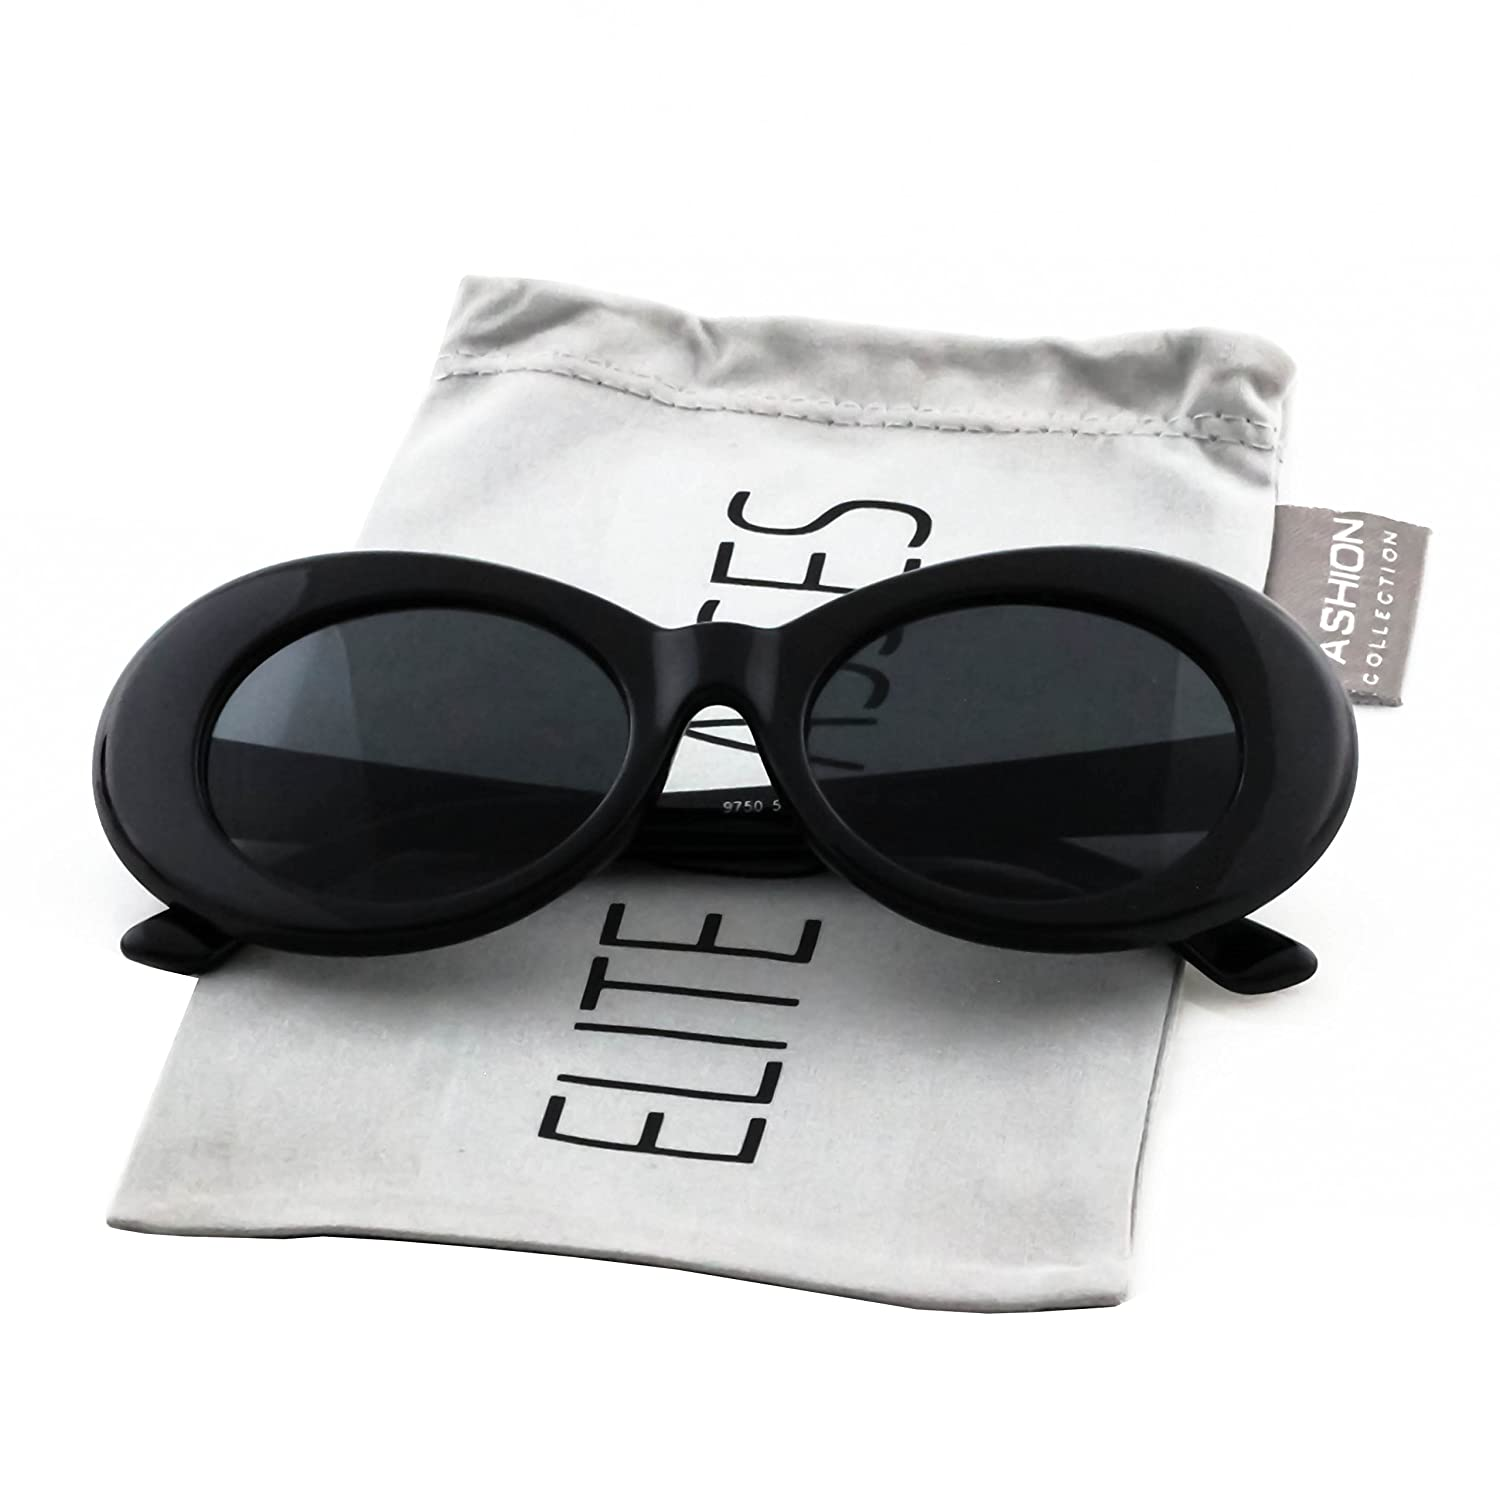 b44060c63d5 Amazon.com  Clout Goggles Oval Mod Retro Thick Frame Rapper Hypebeast  Eyewear Supreme Glasses Cool Sunglasses (American Flag